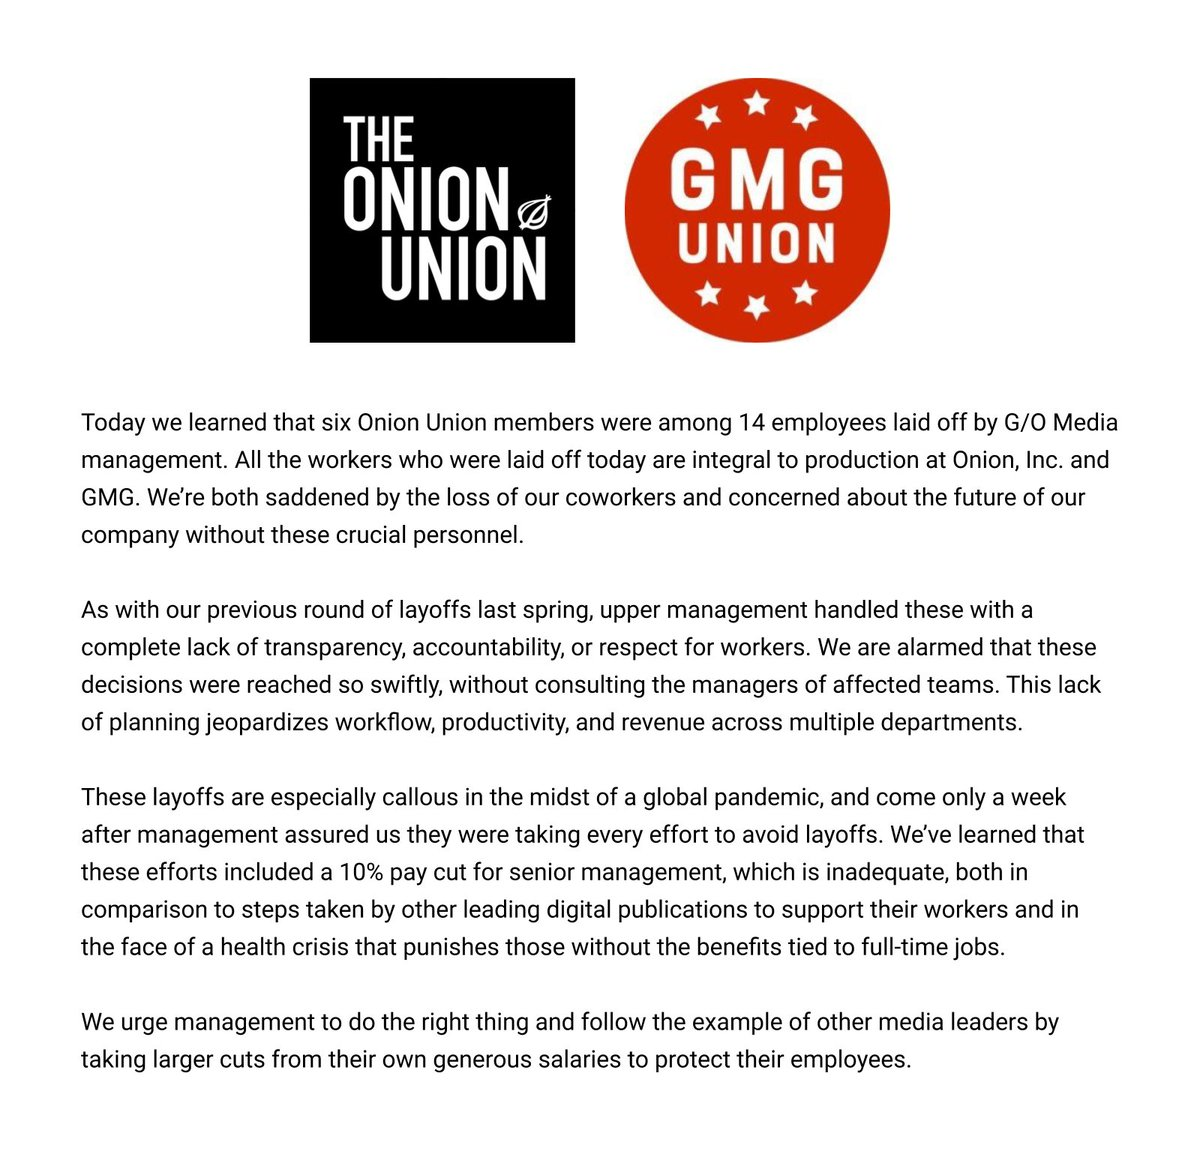 our statement regarding the layoffs at G/O media today: